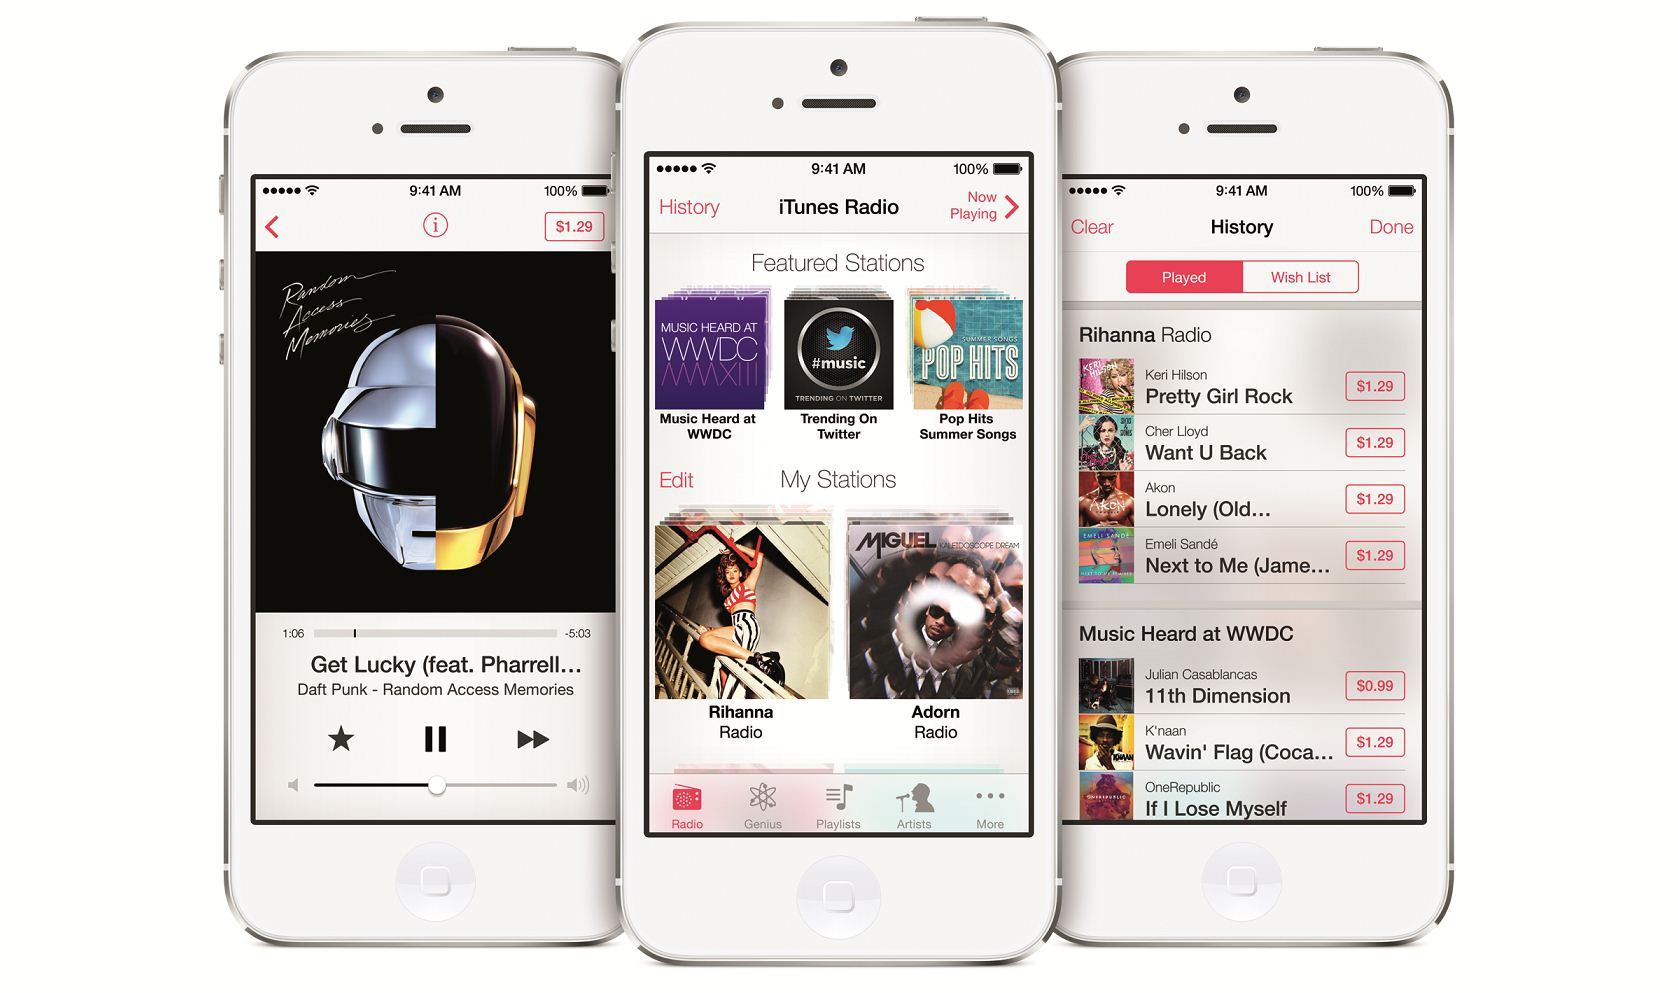 iTunes Radio announced by Apple as part of iOS 7